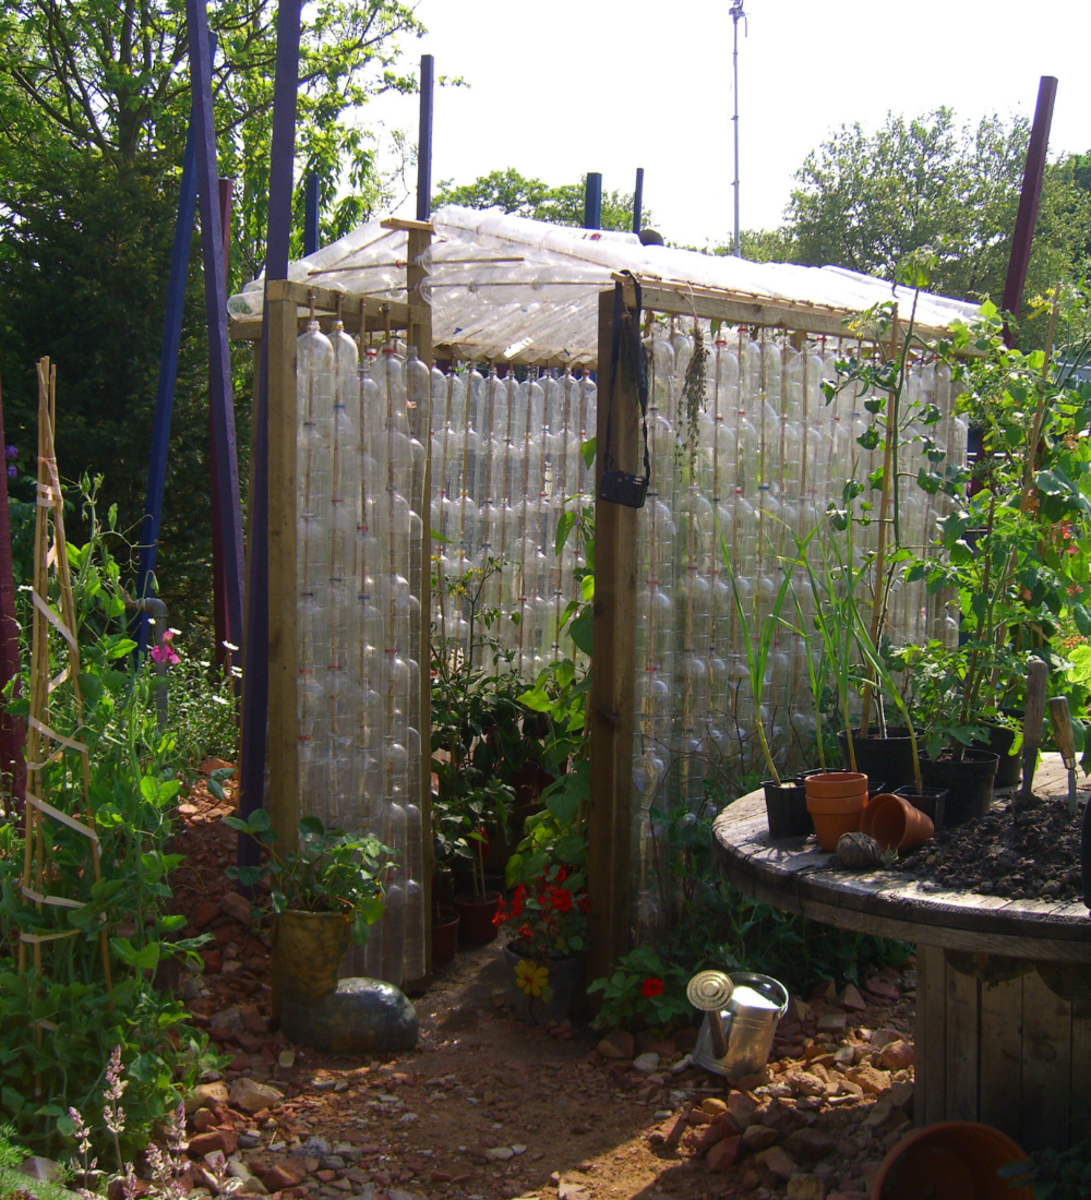 DIY greenhouse made of recycled plastic soda bottles.